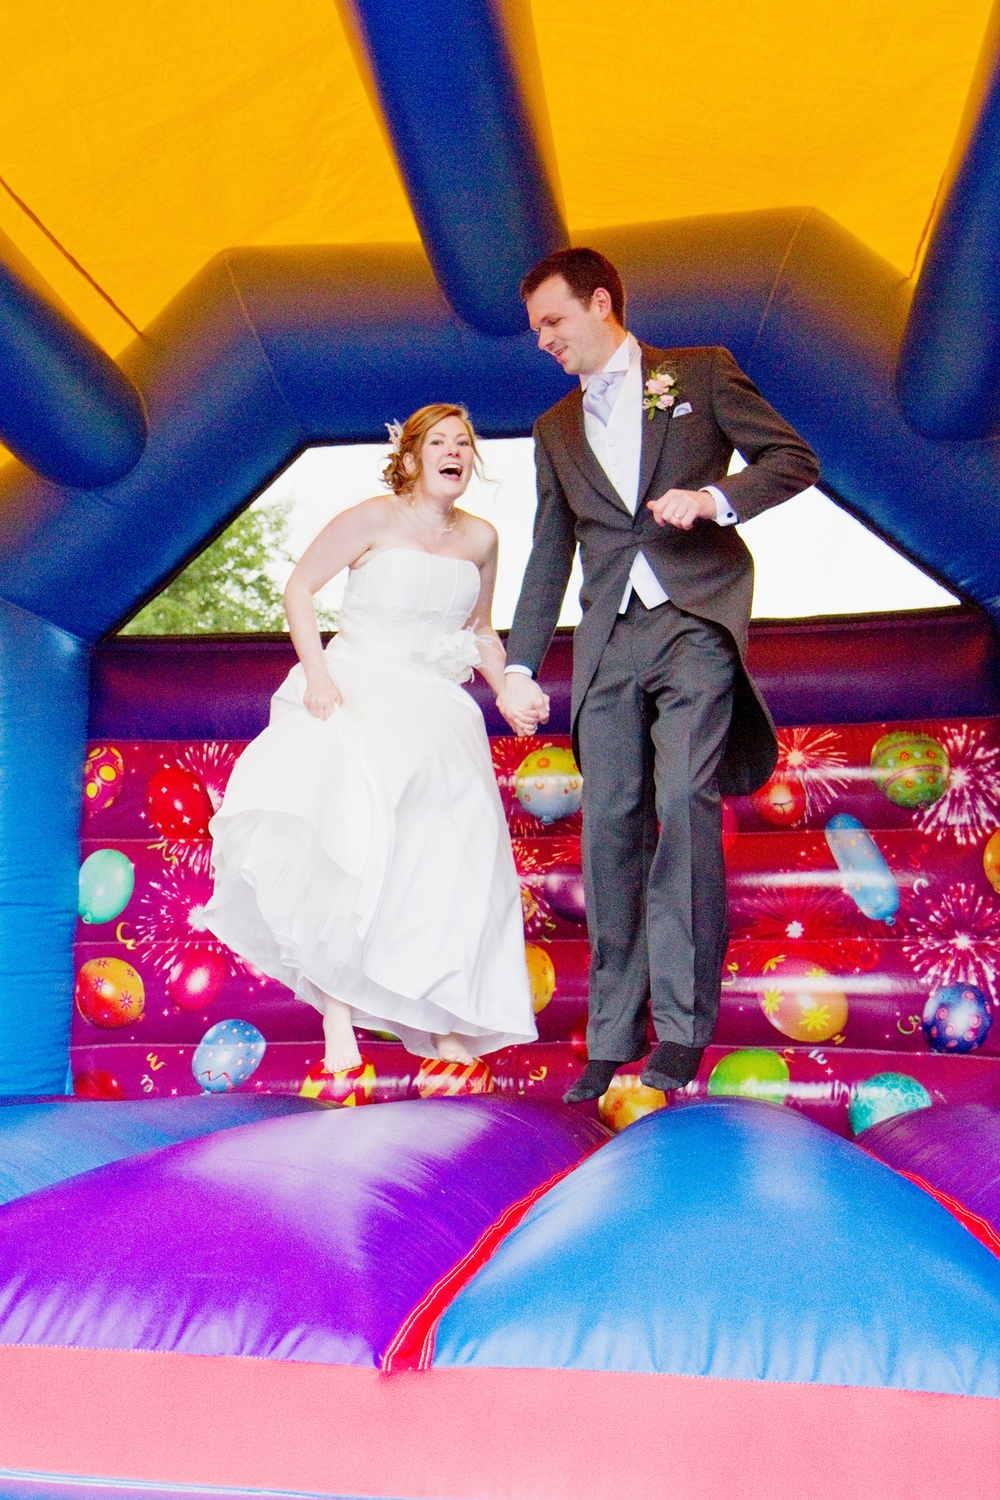 Wedding Bouncy Castle, Helen England Photography, Kent, U.K